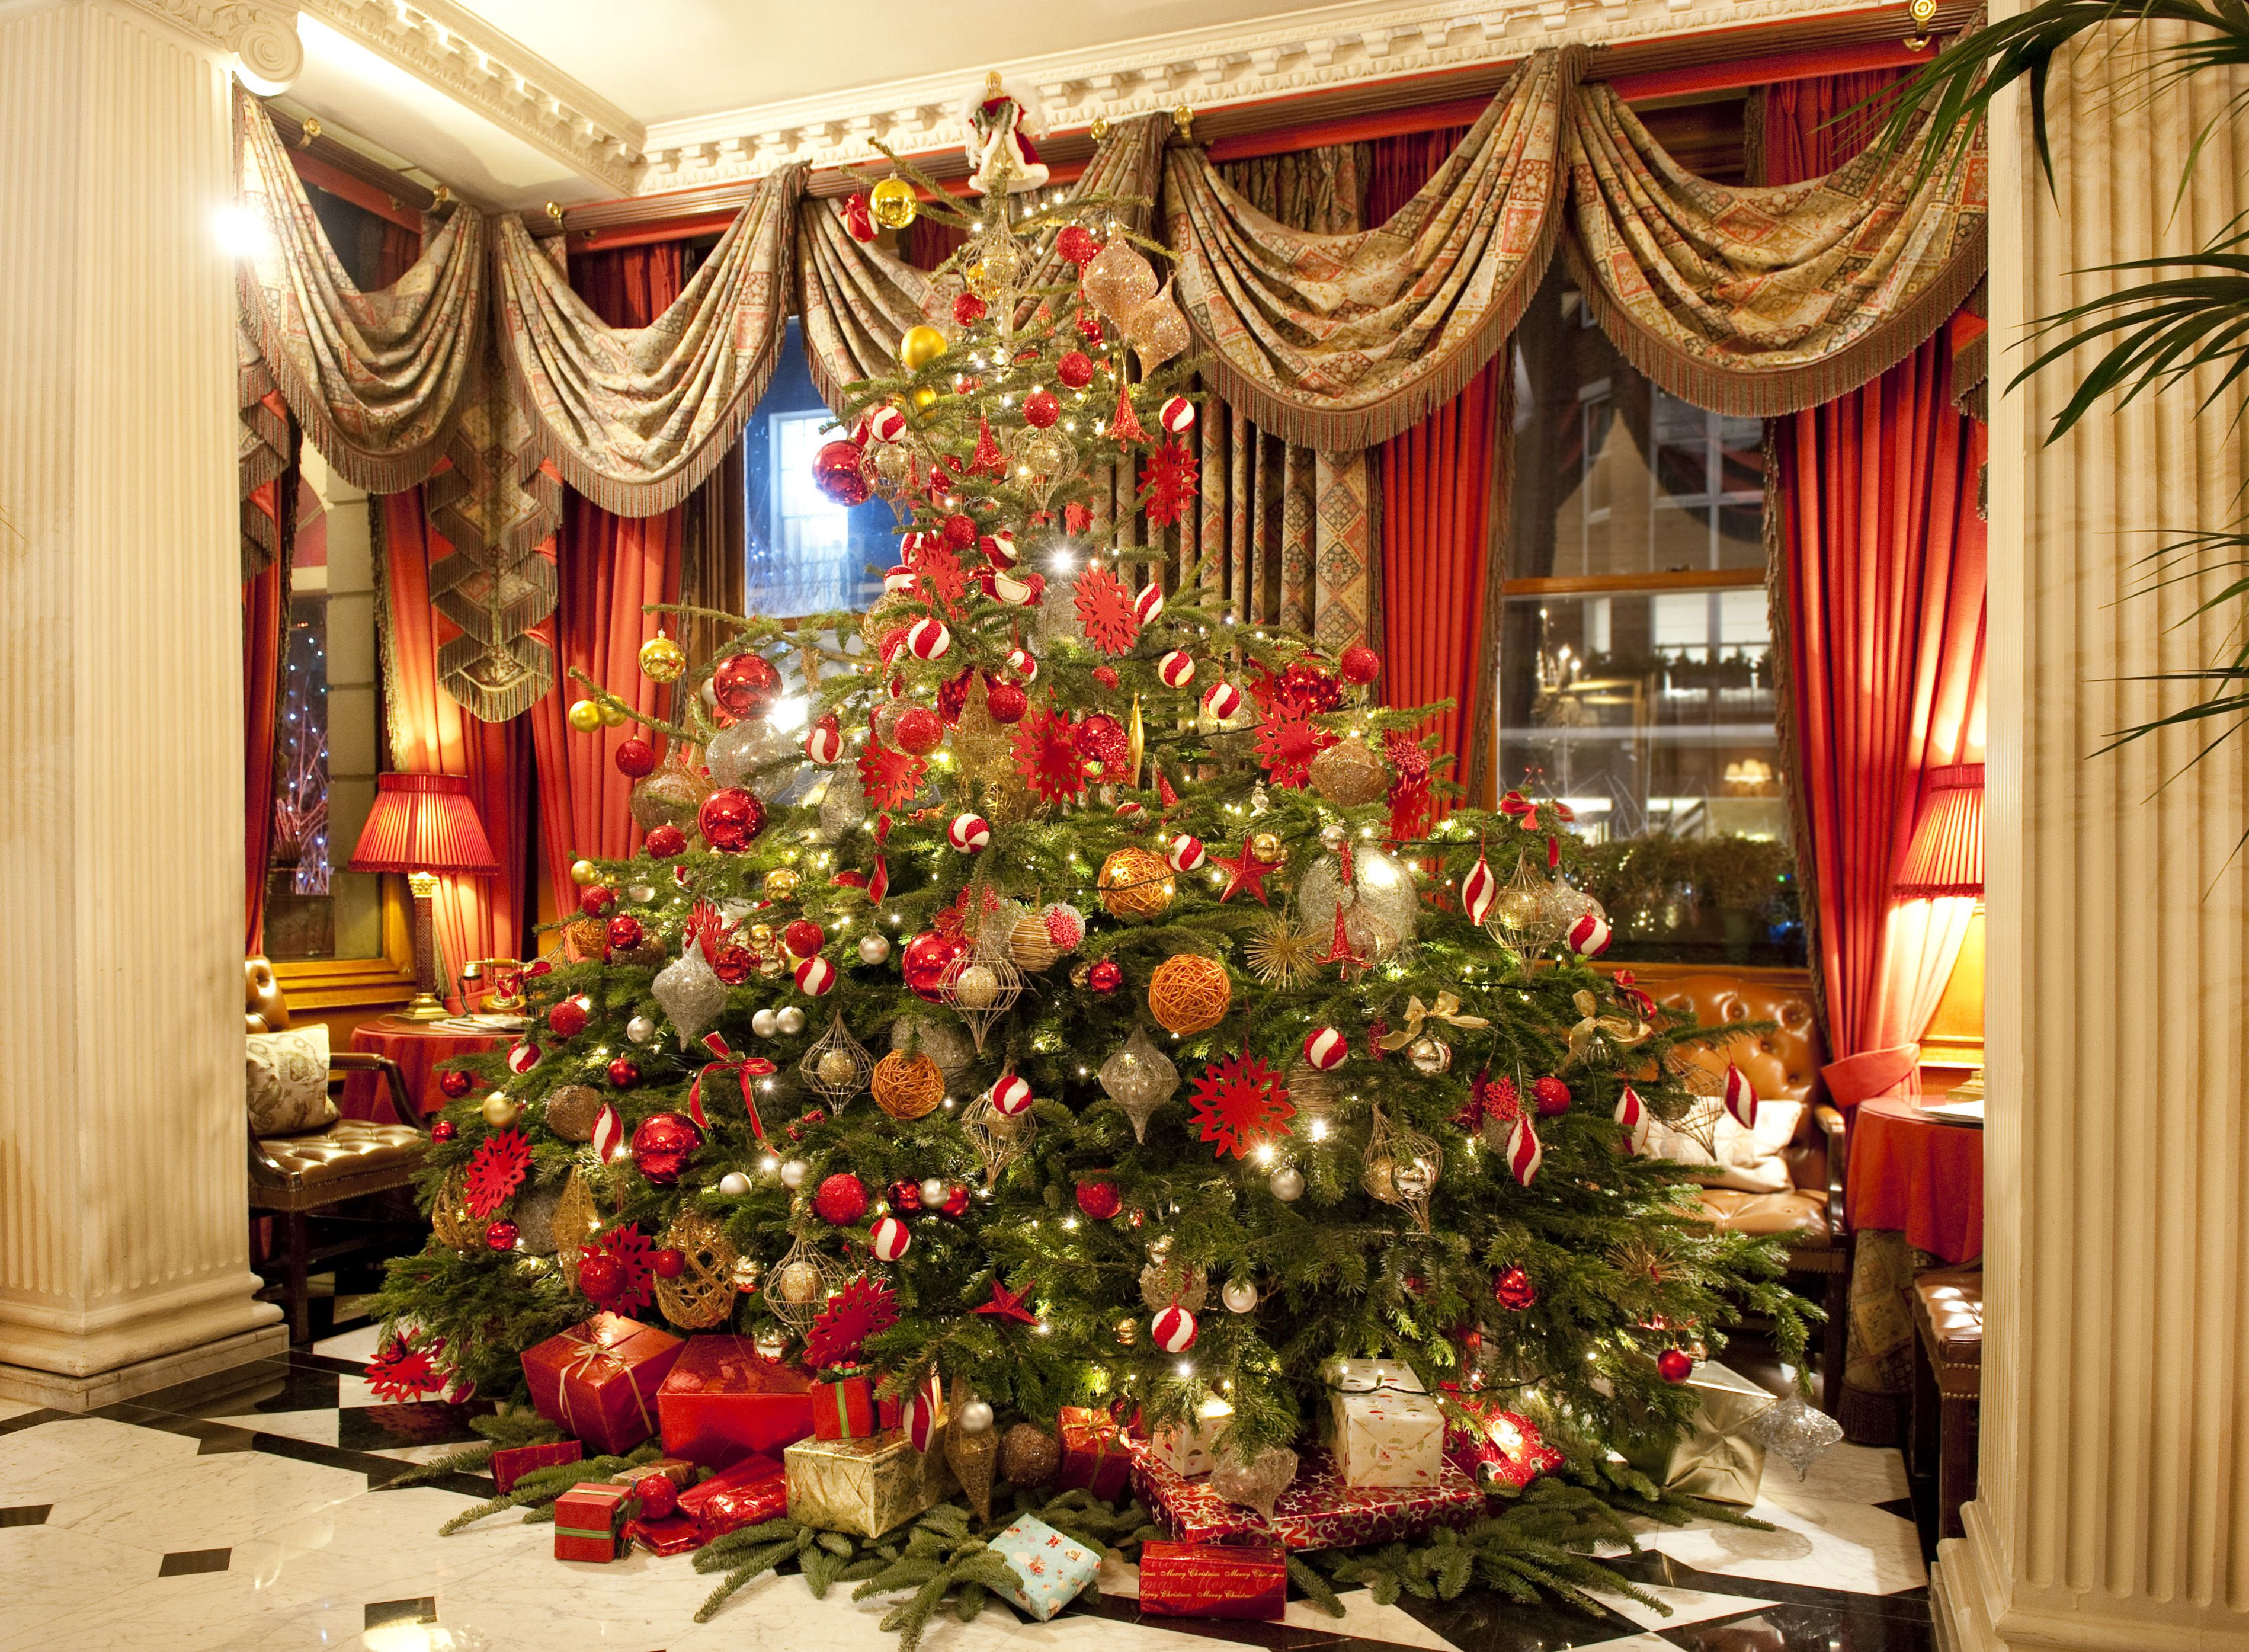 Have You Ever Seen A Christmas Tree More Heavily Laden